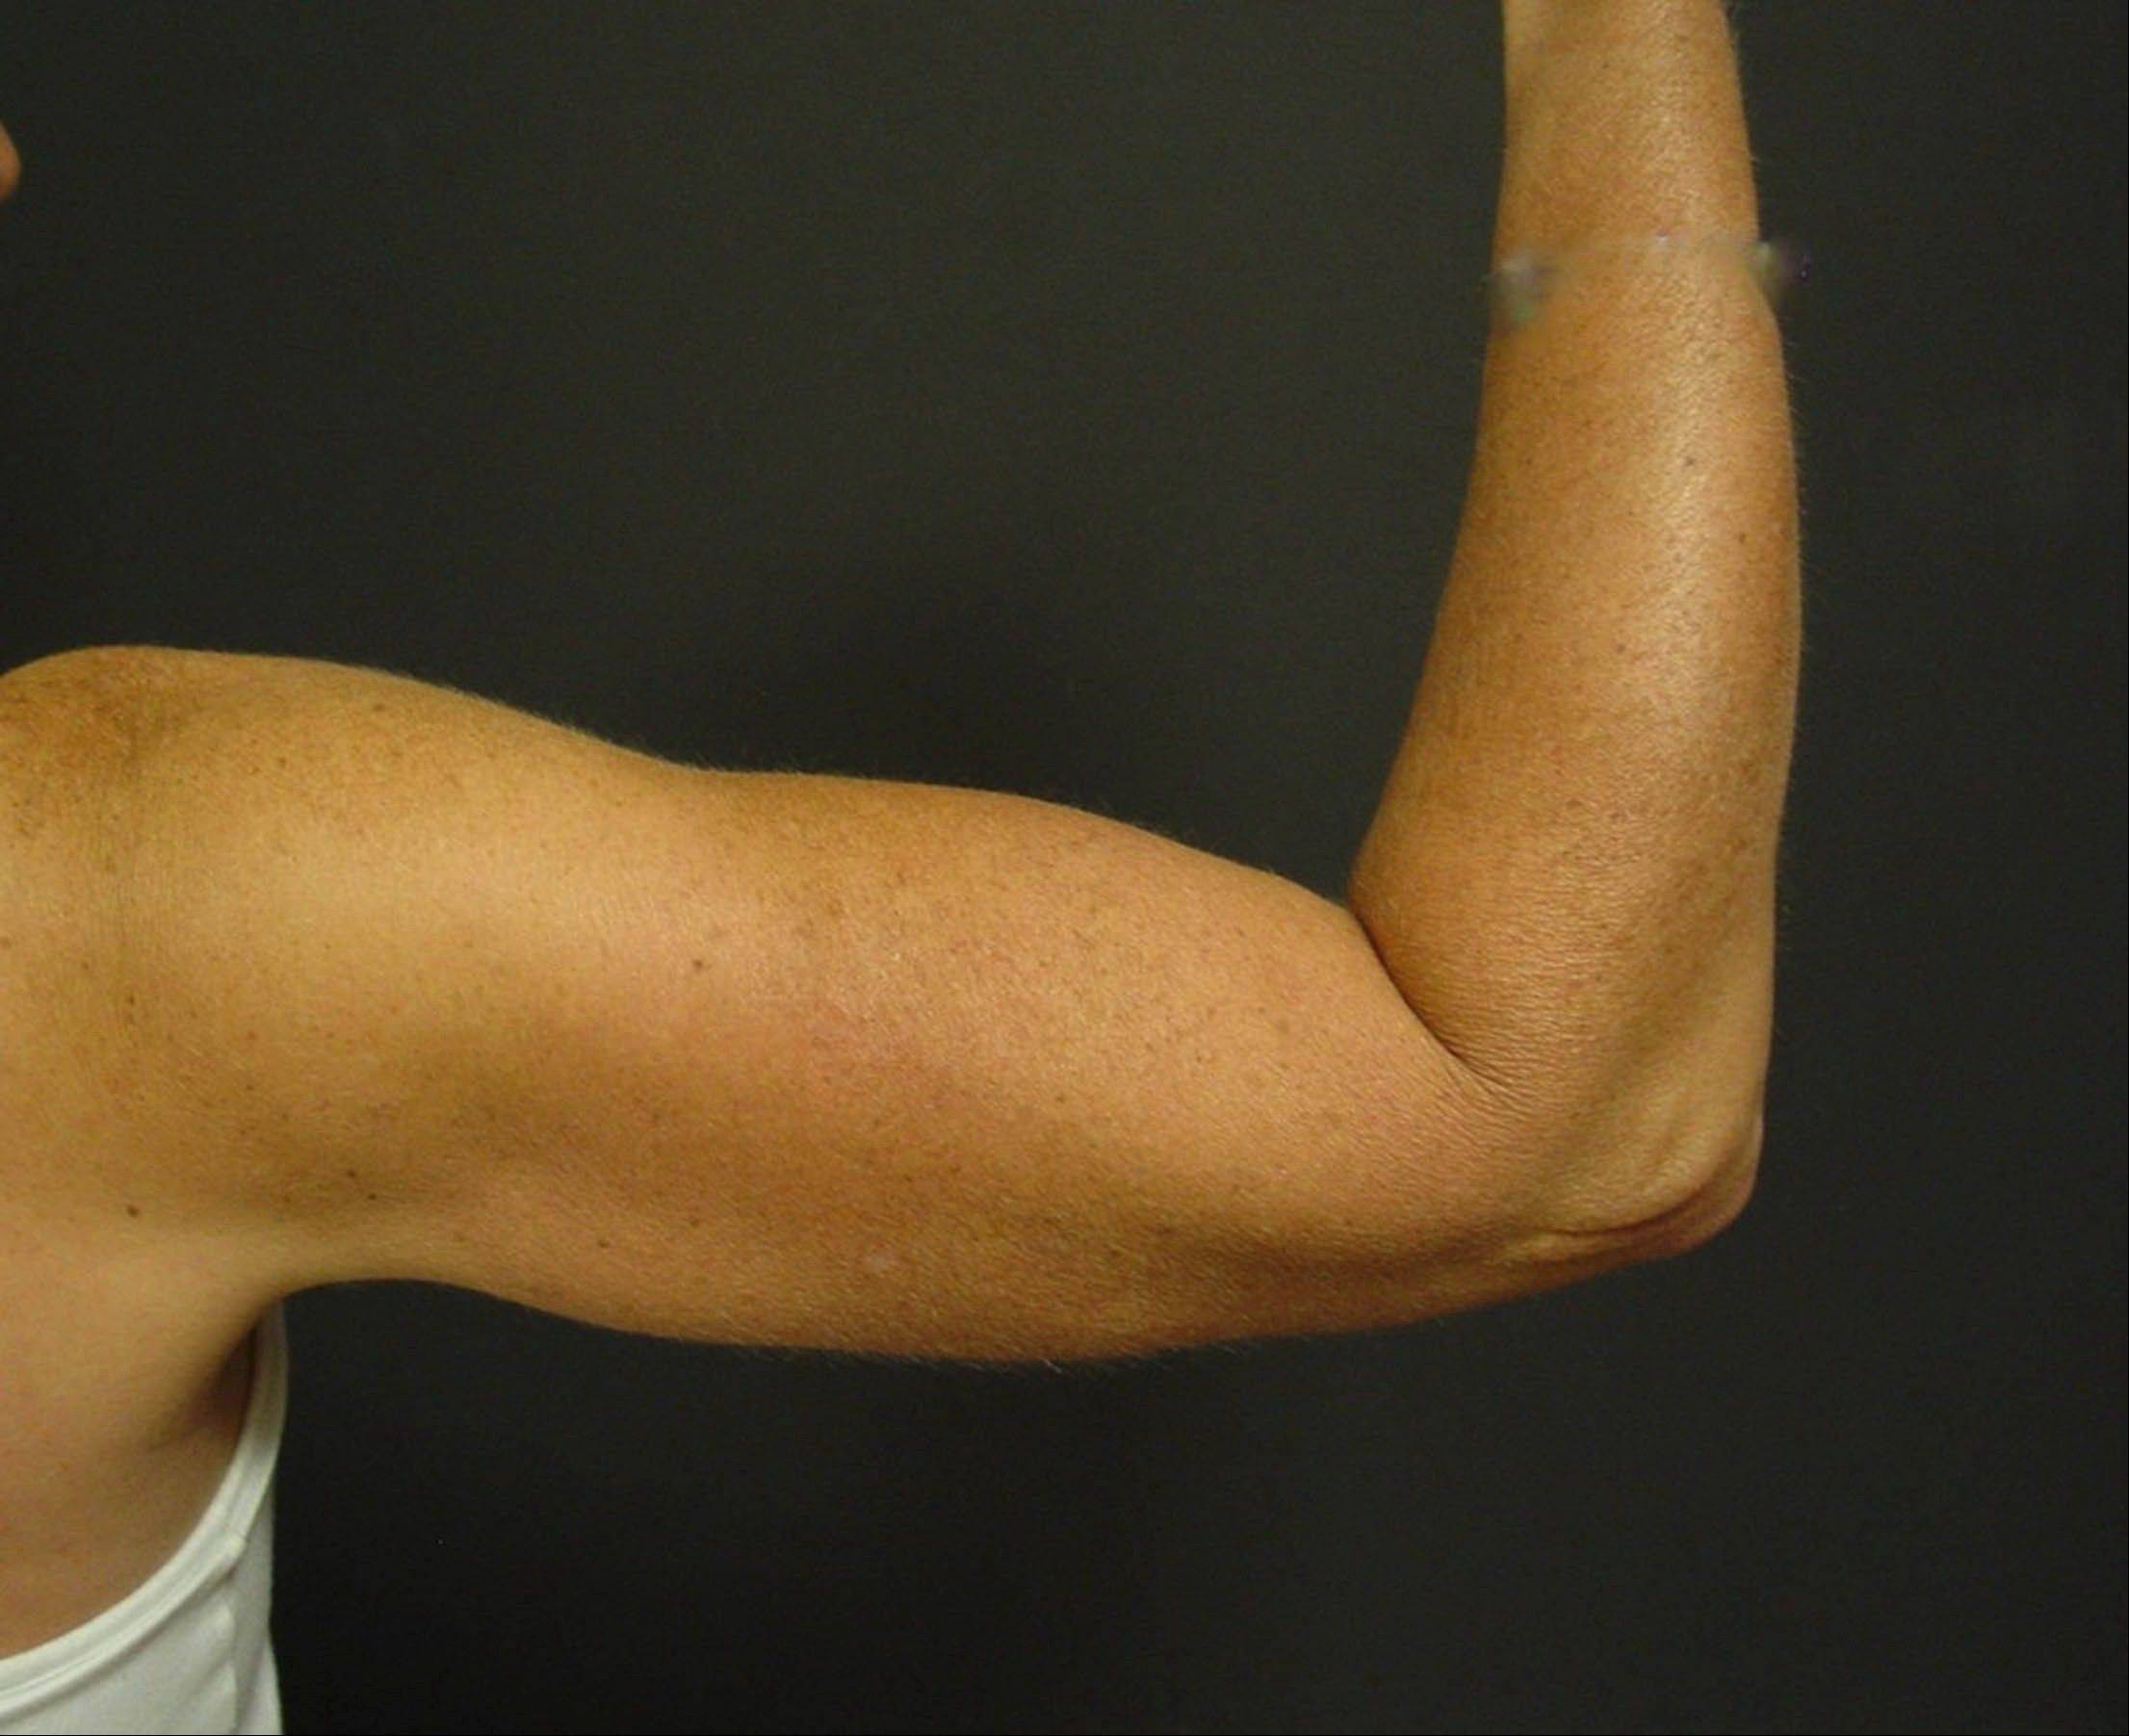 Dr. Suzan Obagi's patient after upper-arm-lift surgery, also known as brachioplasty.